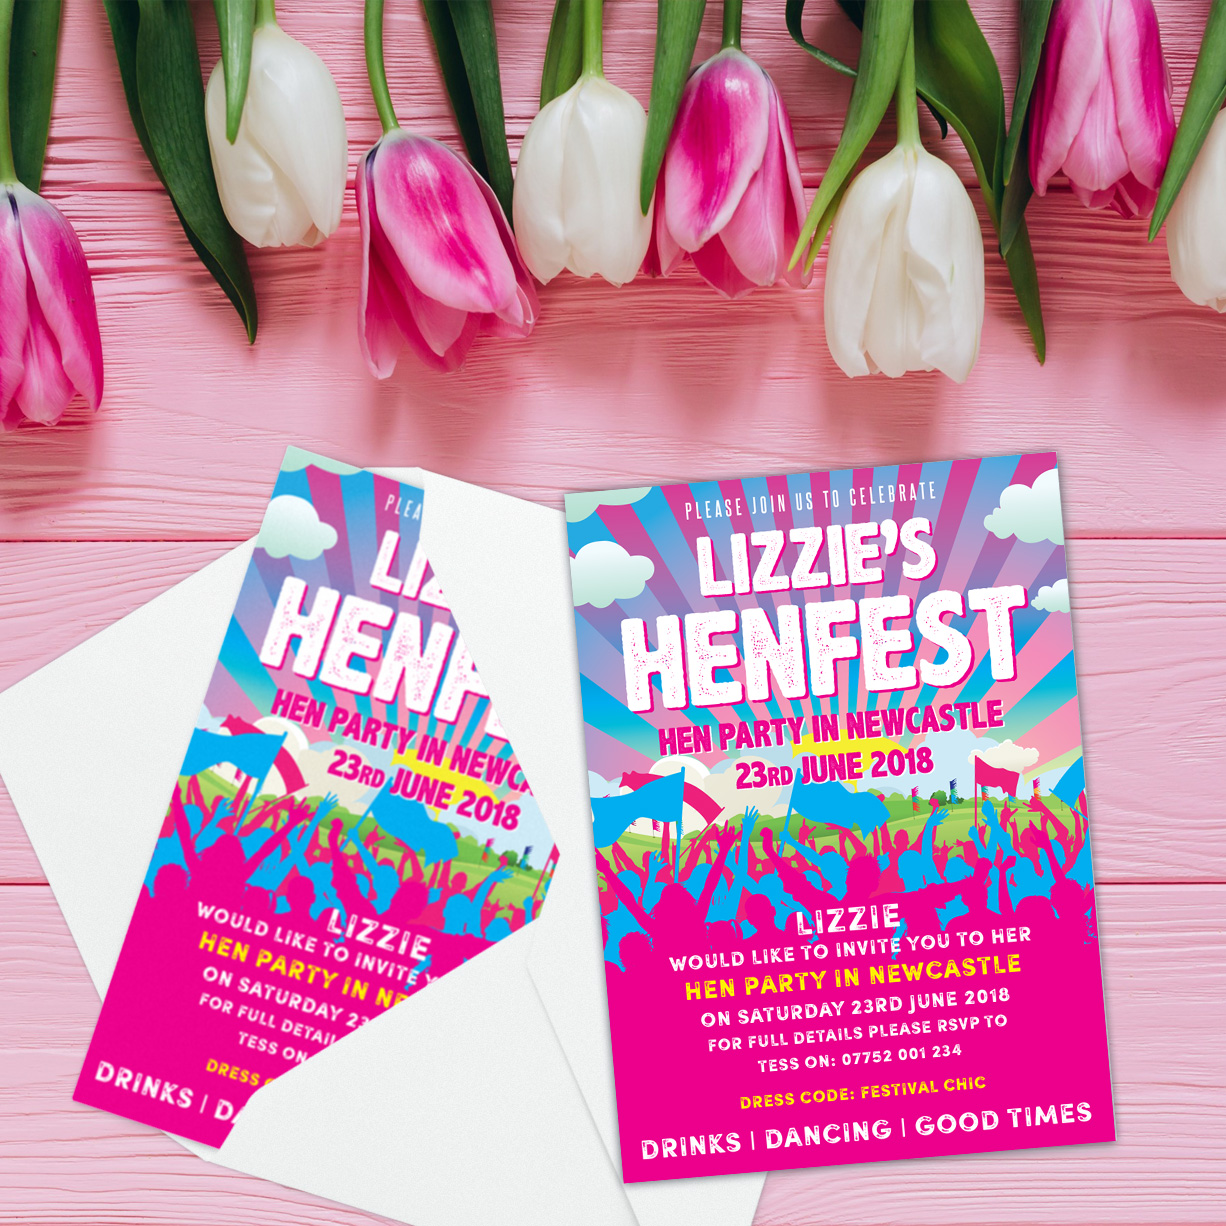 hen fest hen party invites